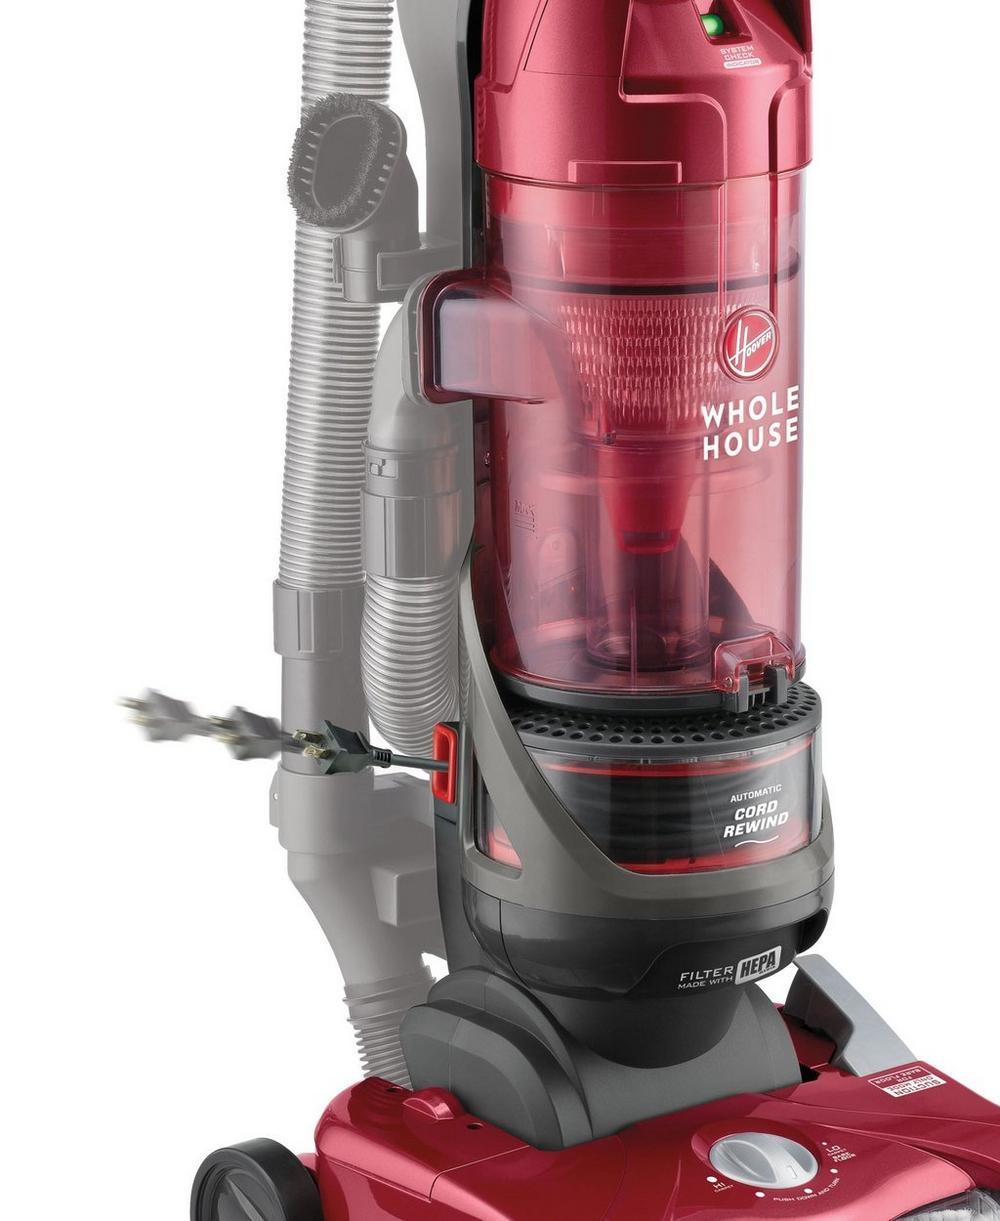 Reconditioned Whole House Upright Vacuum3